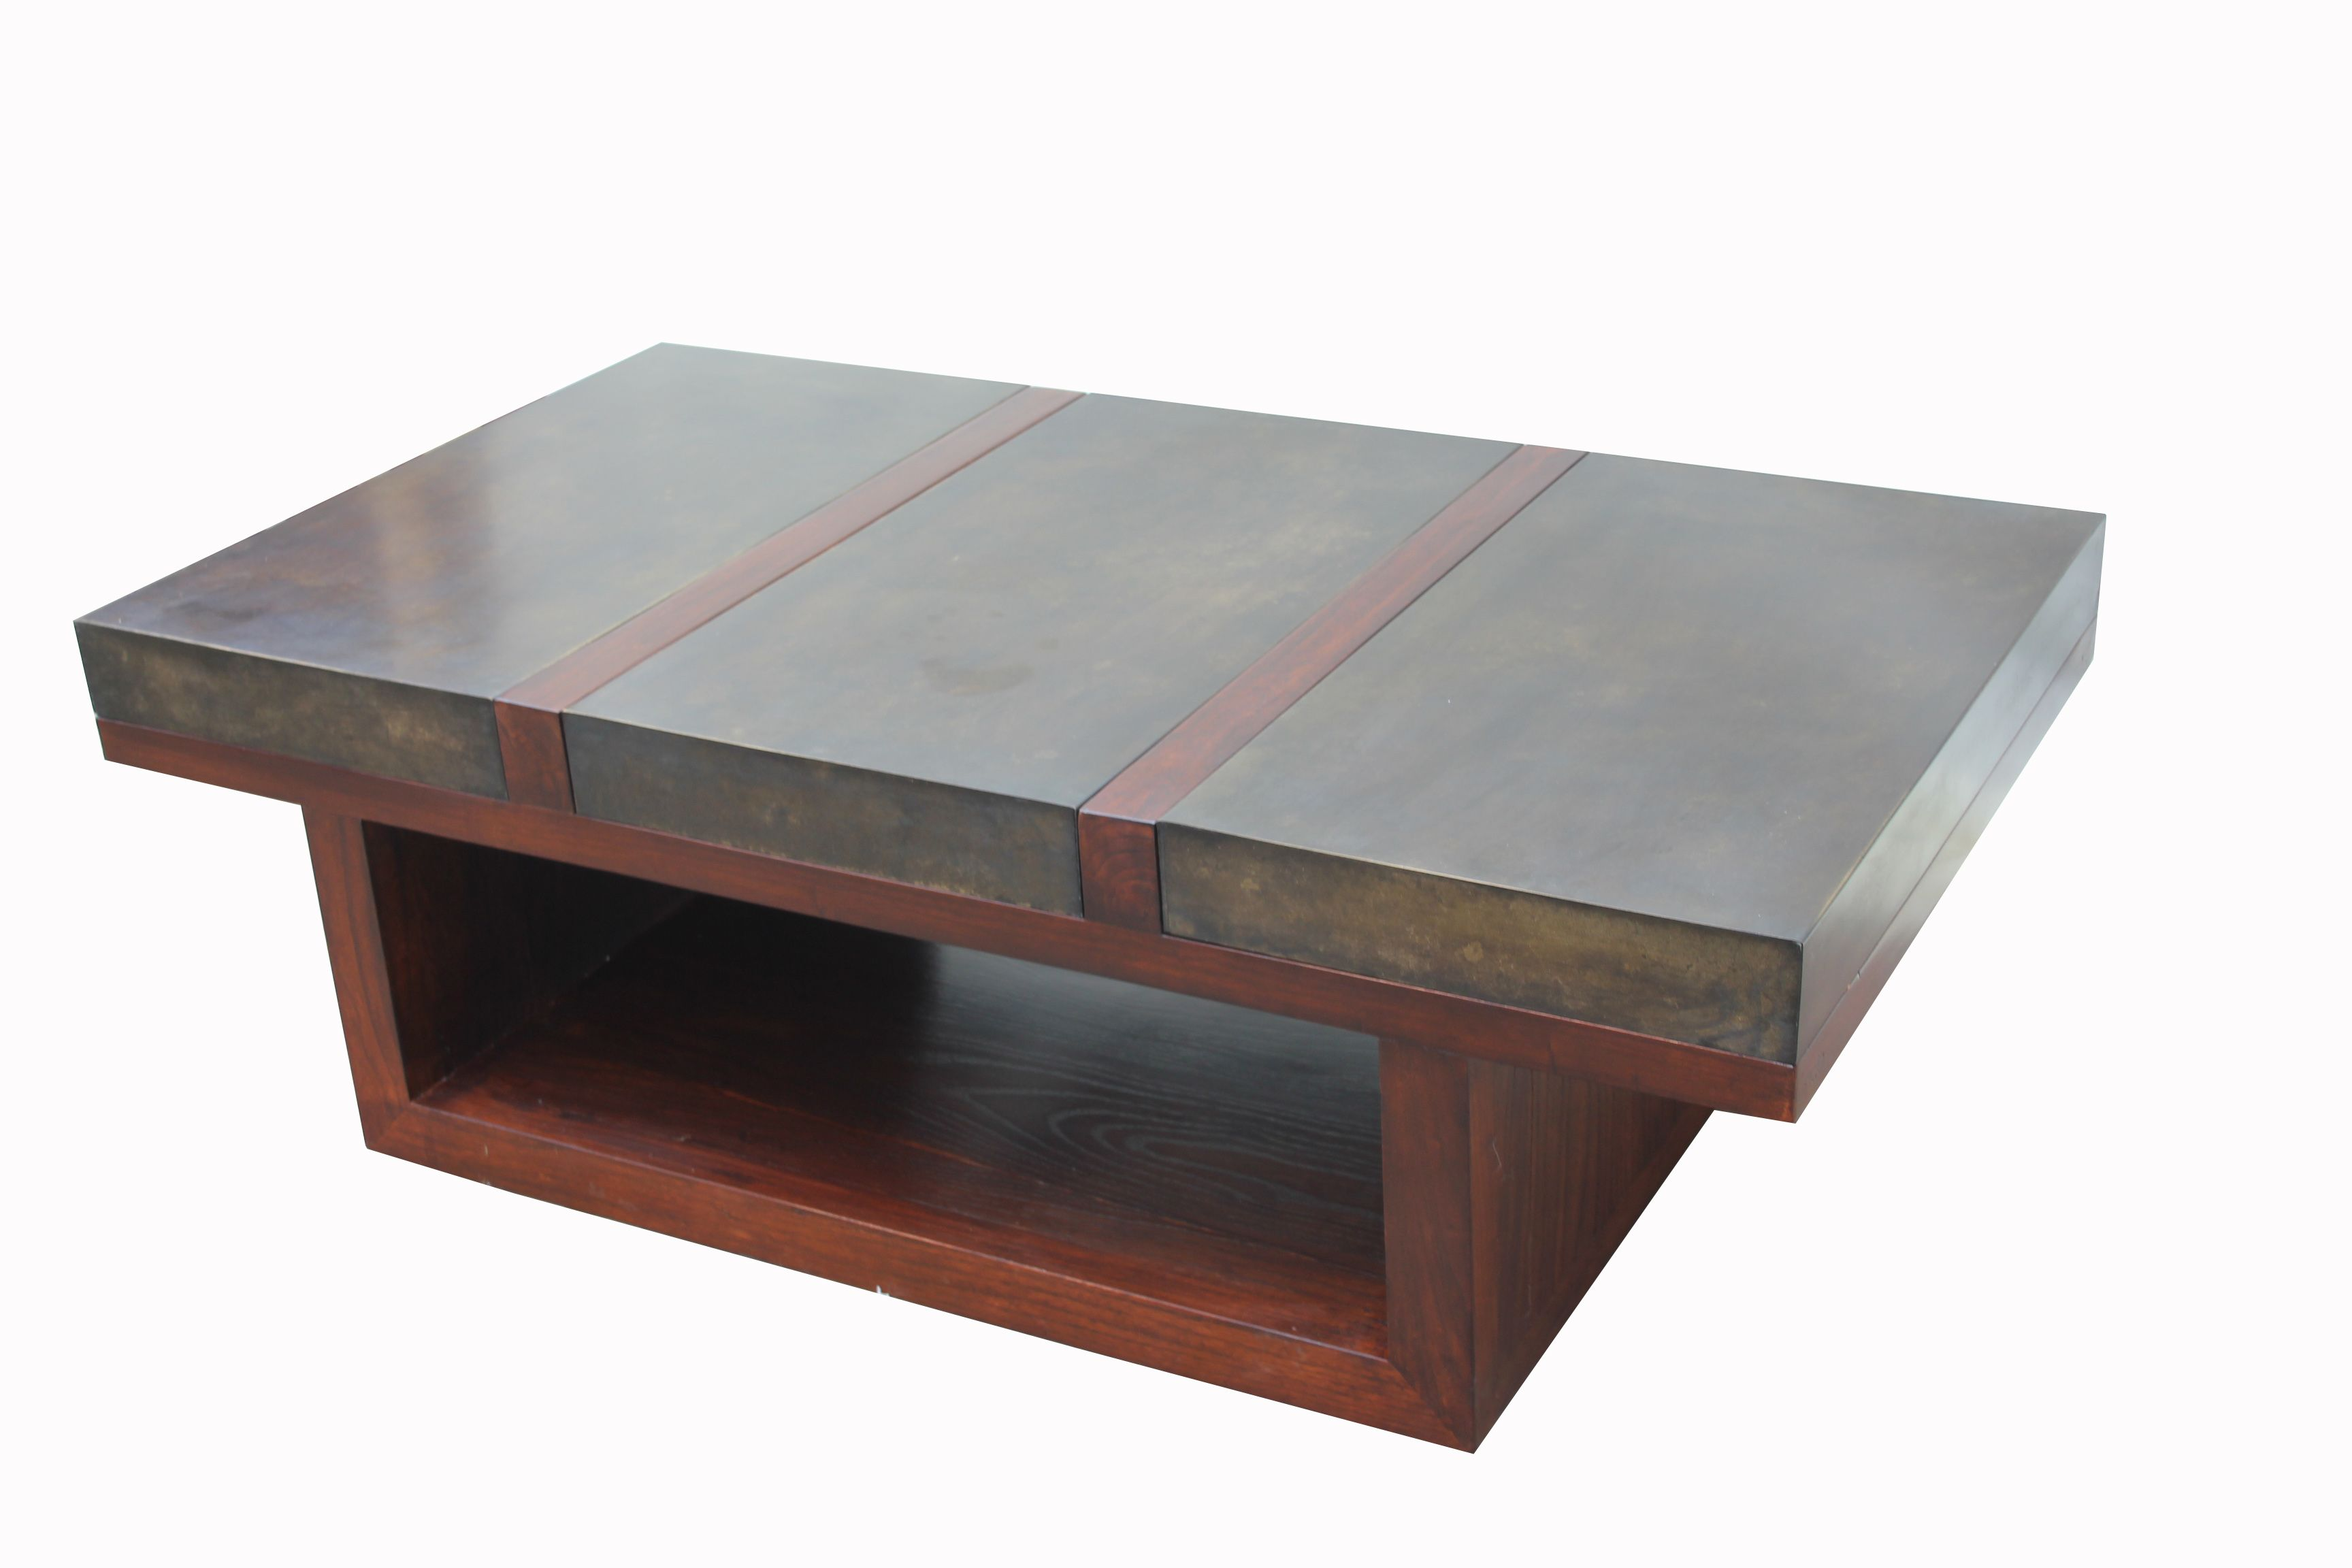 Coffee Table In Bricks And Elm Wood Coffee Table Wood Table [ 2304 x 3456 Pixel ]